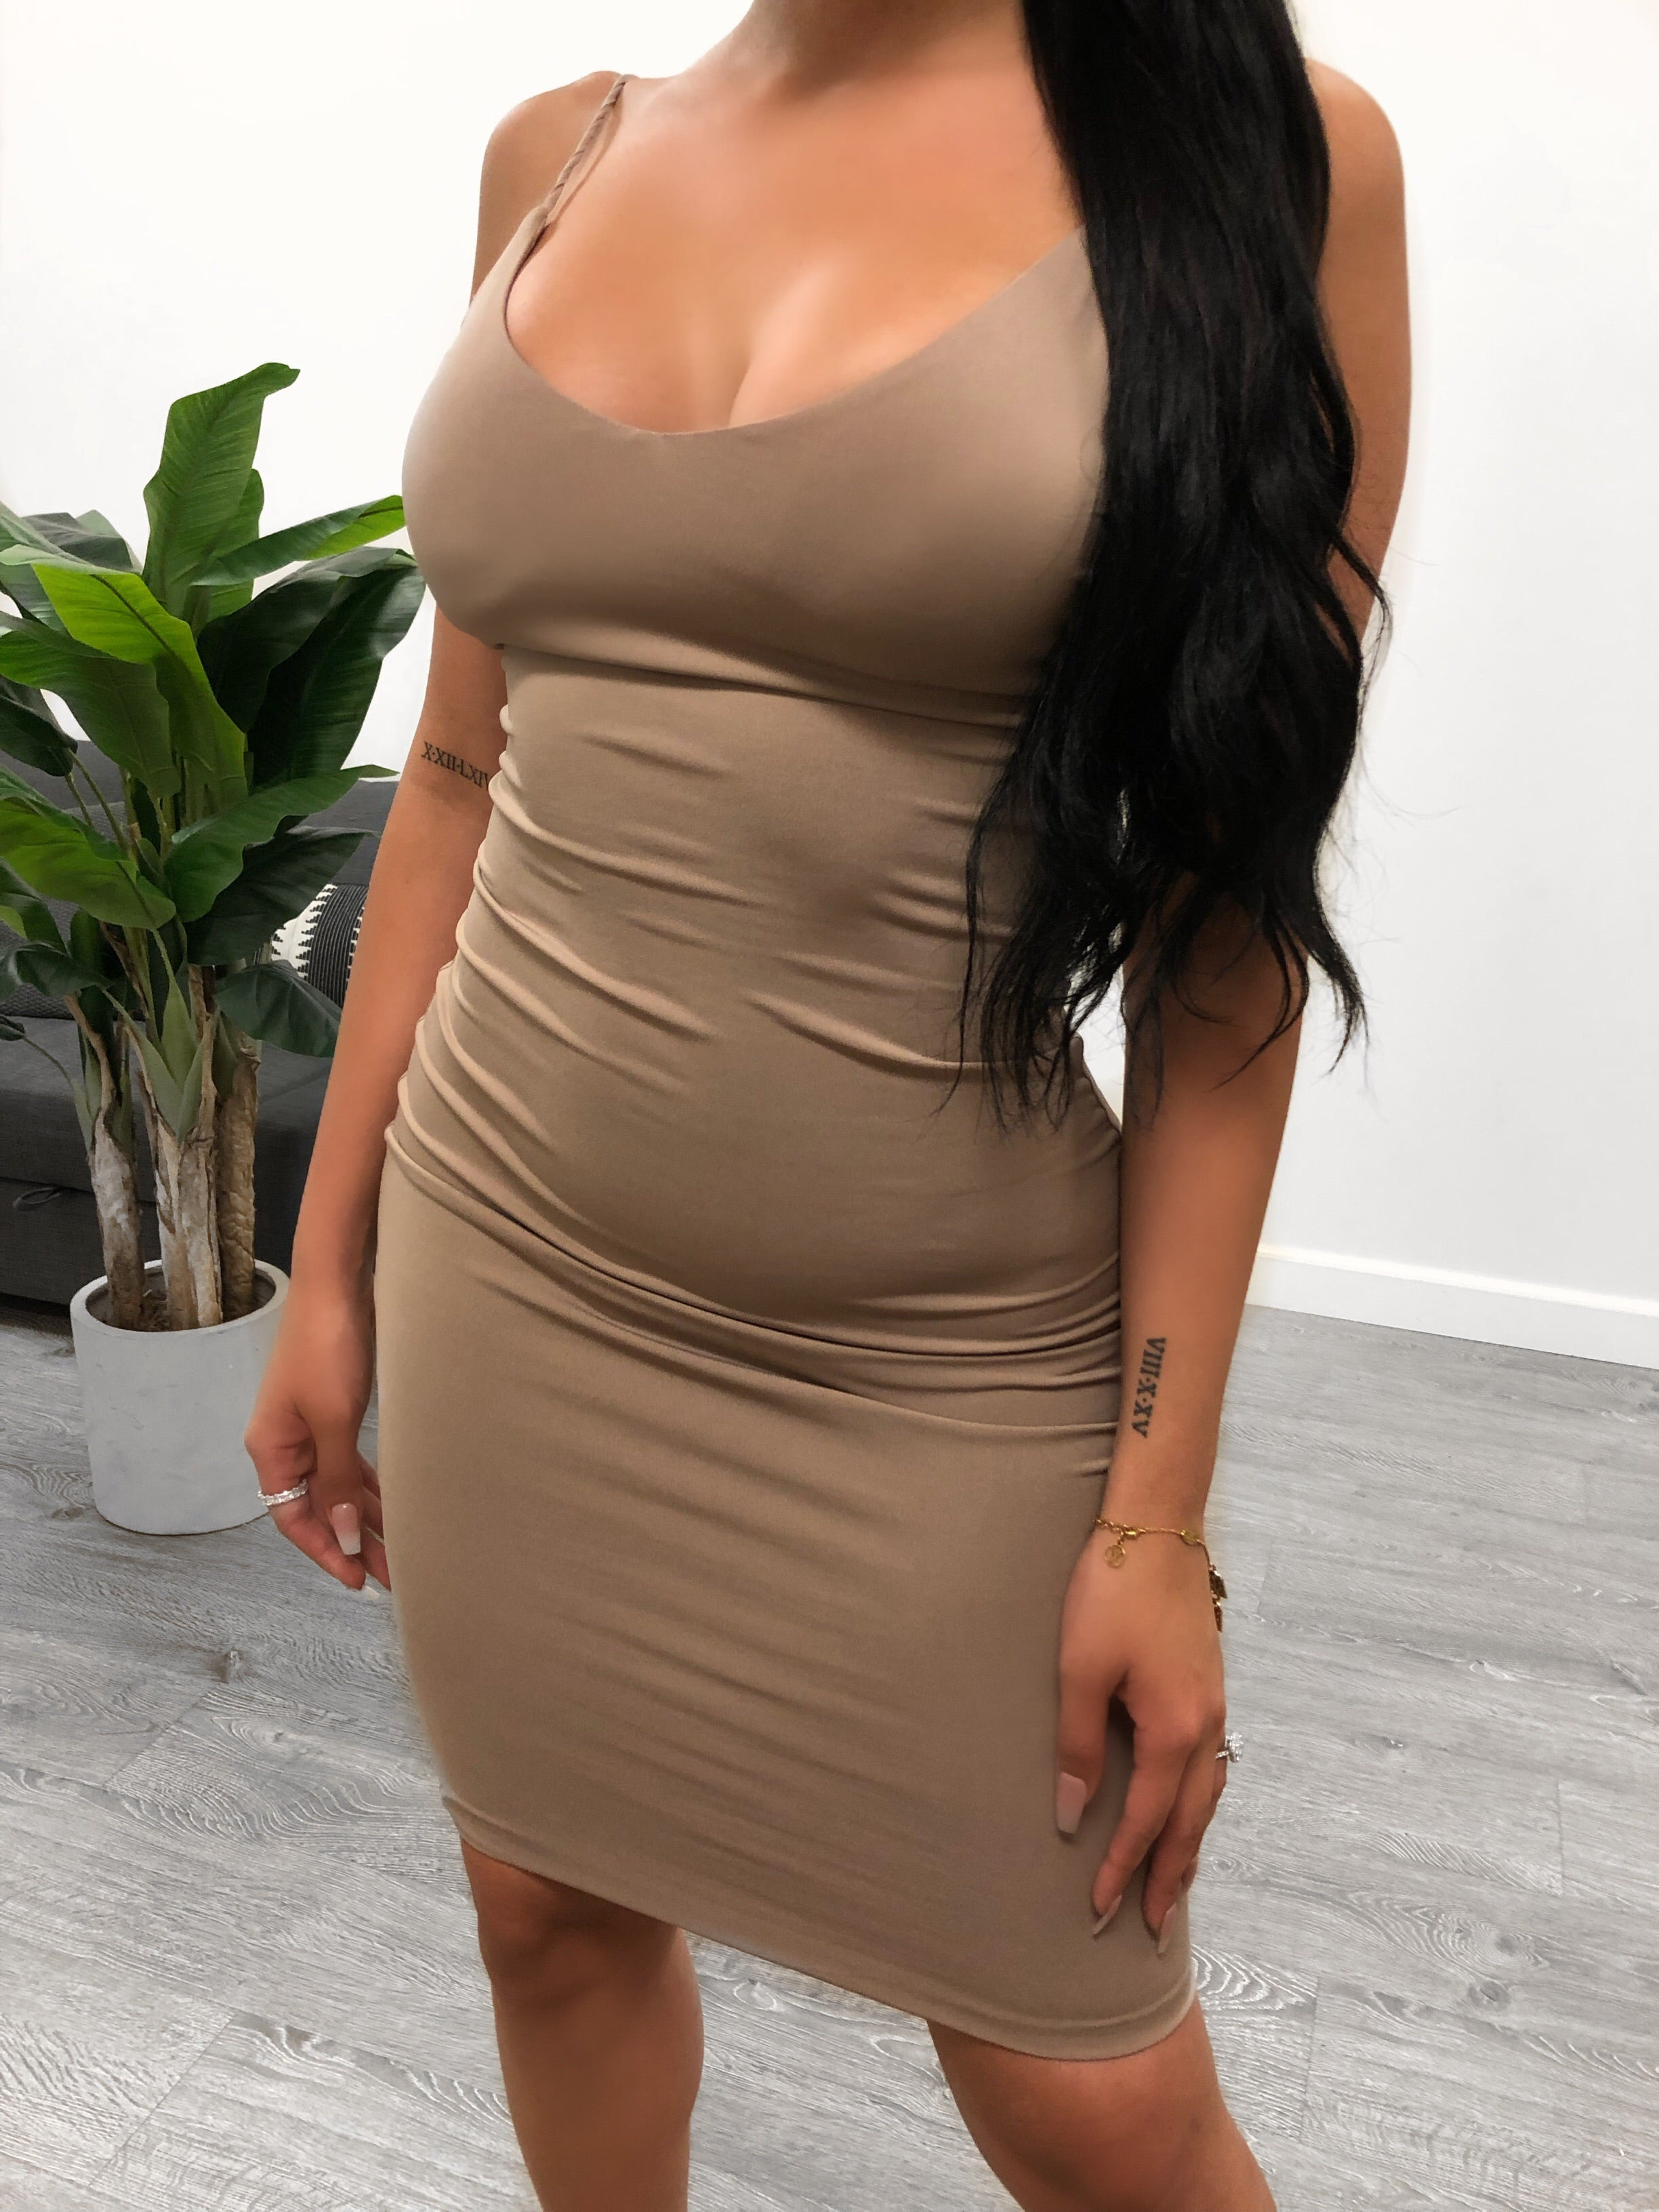 nude Cami Dress, spaghetti dress with adjsutable straps. Dress is over the knee on 5'7 model. Double layered. Dress comes in multiple colors.